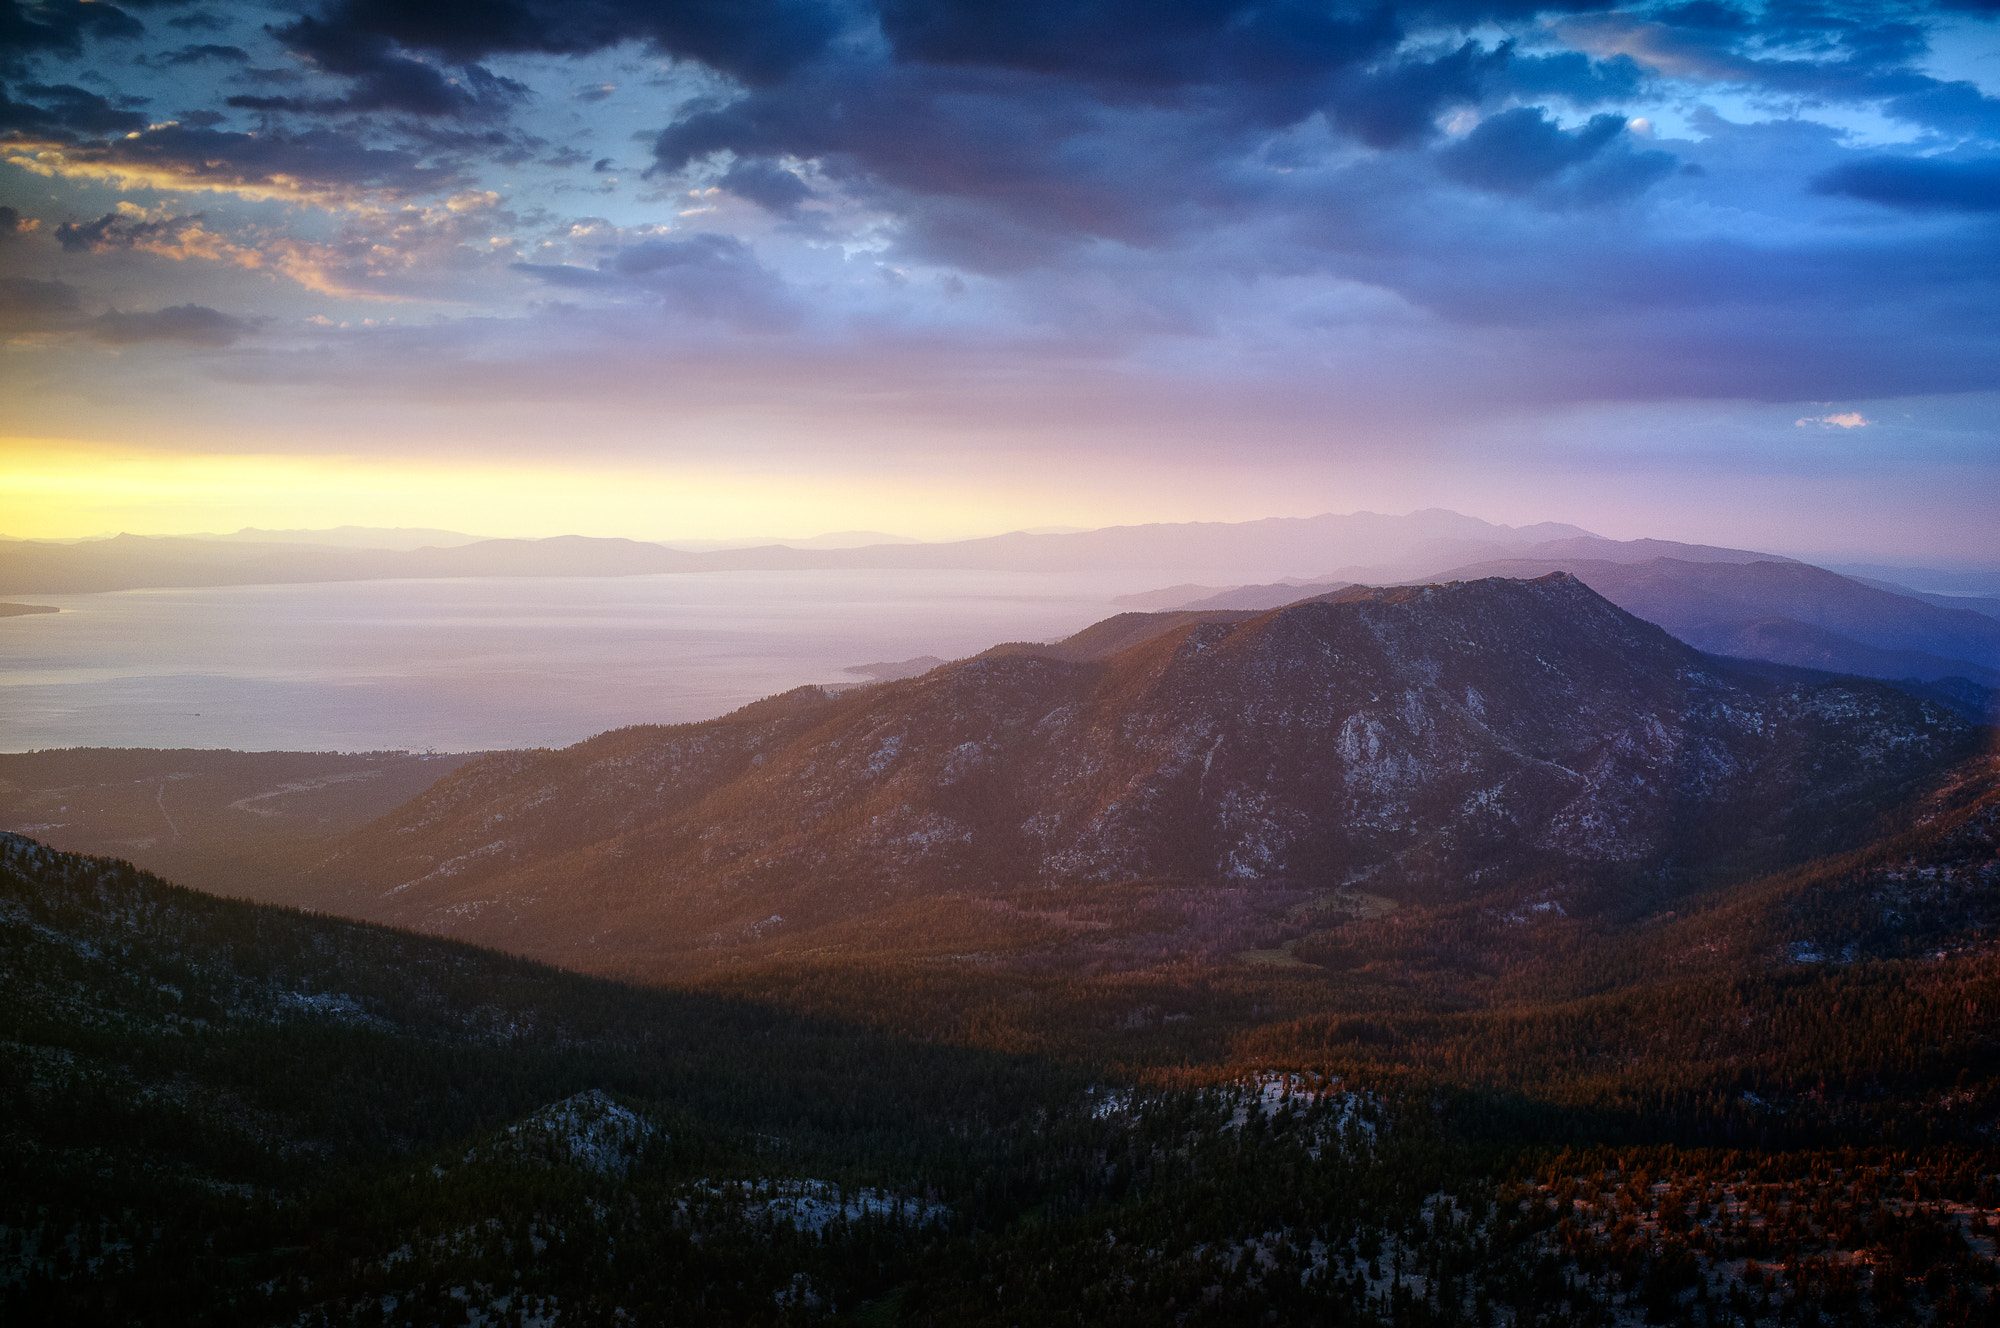 Photograph From the Summit of Freel Peak by Tim Peare on 500px